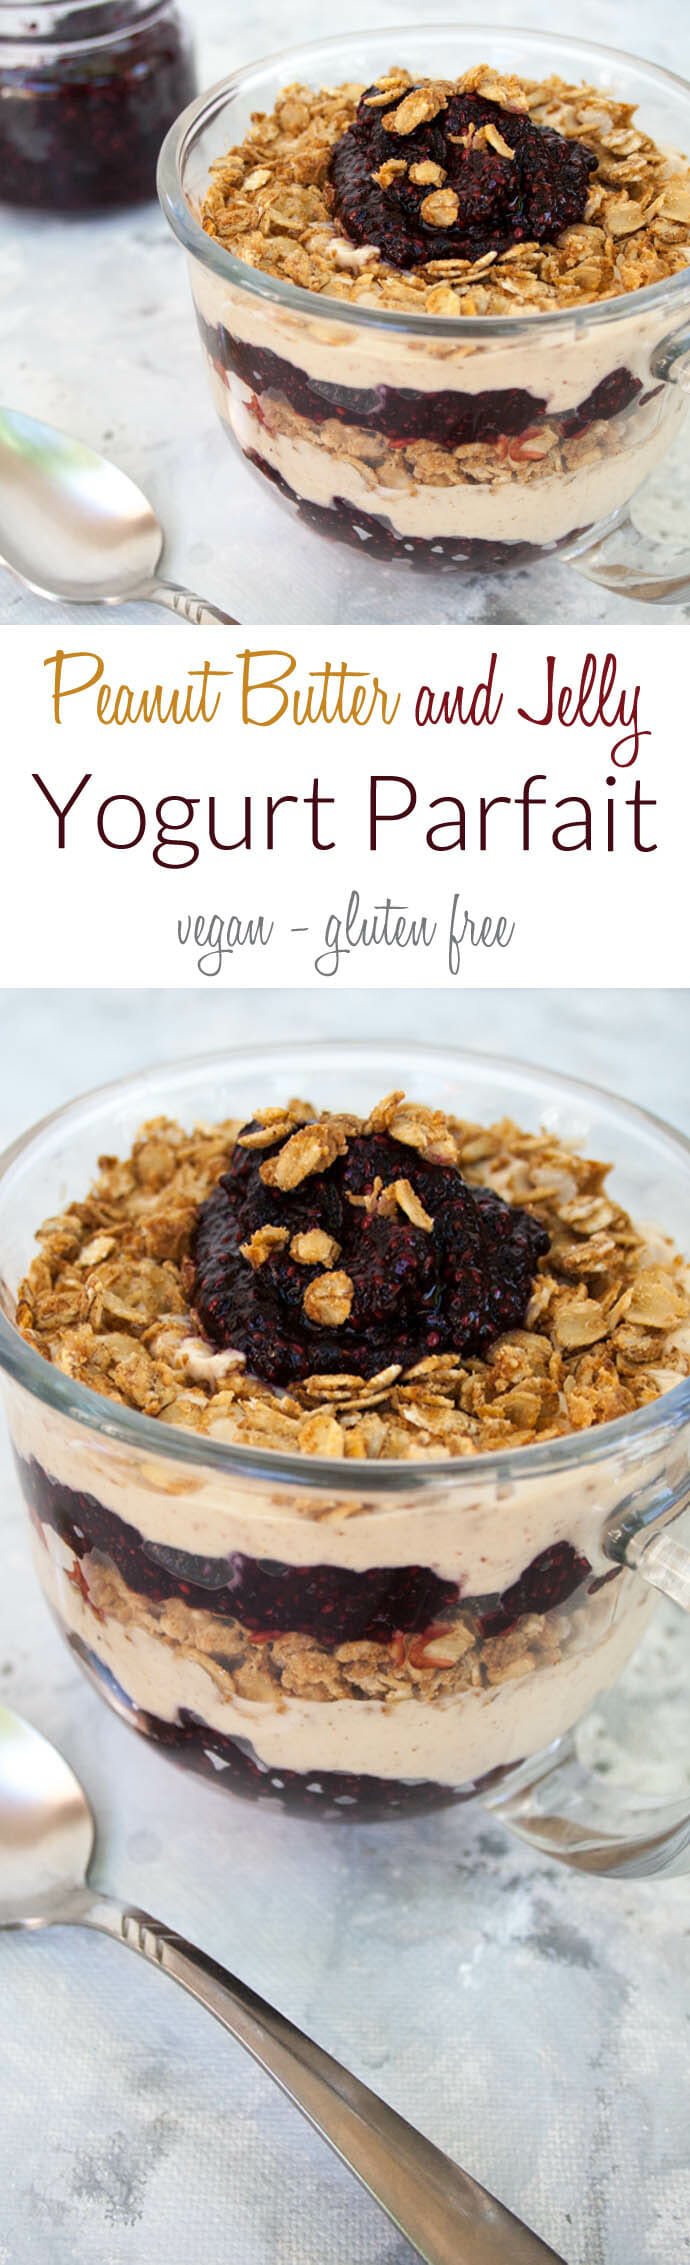 Peanut Butter and Jelly Yogurt Parfait collage photo with text.